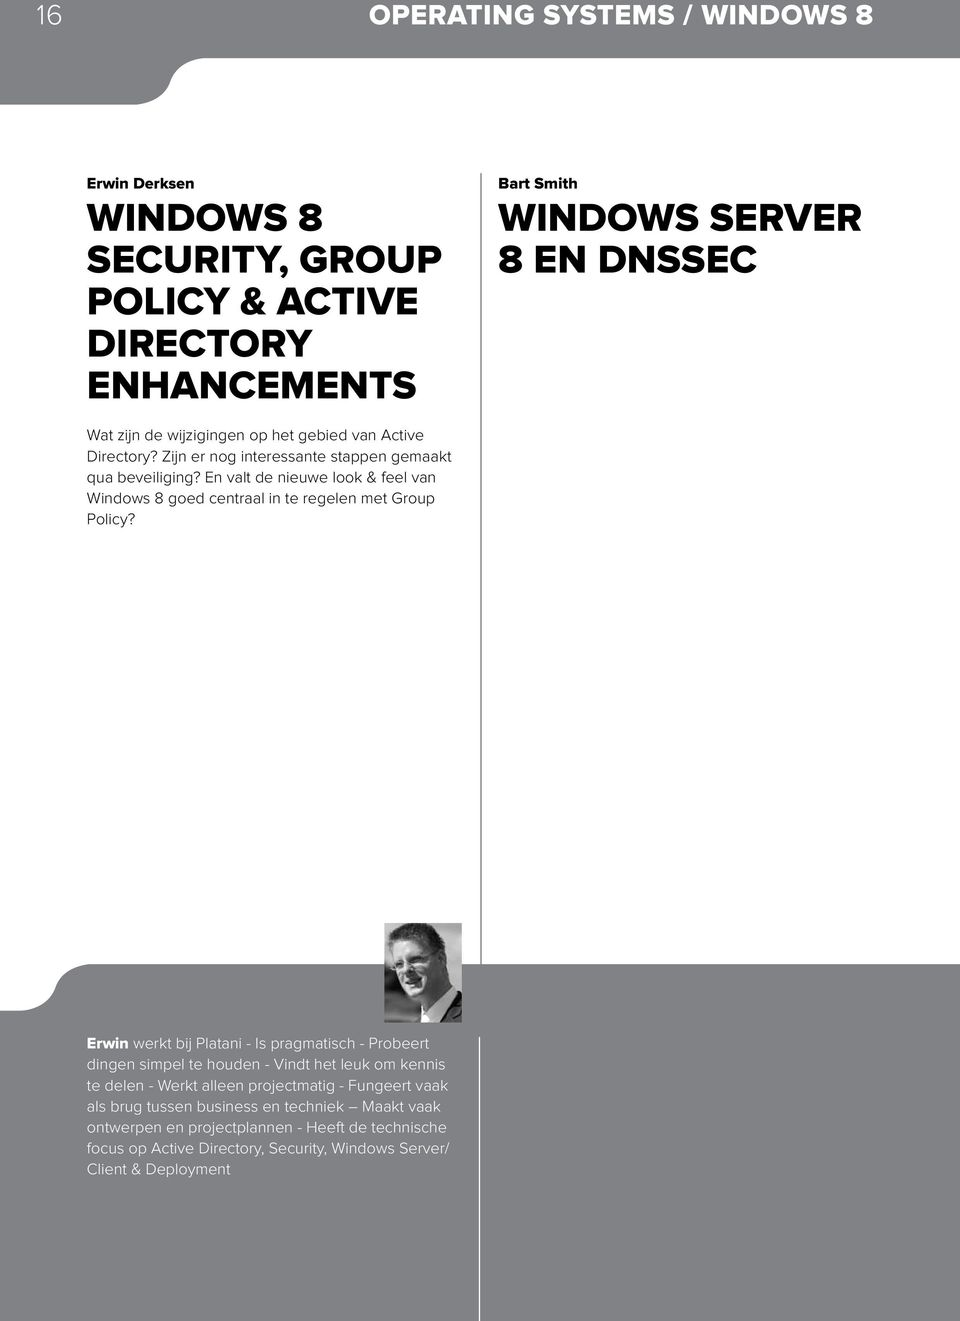 En valt de nieuwe look & feel van Windows 8 goed centraal in te regelen met Group Policy?